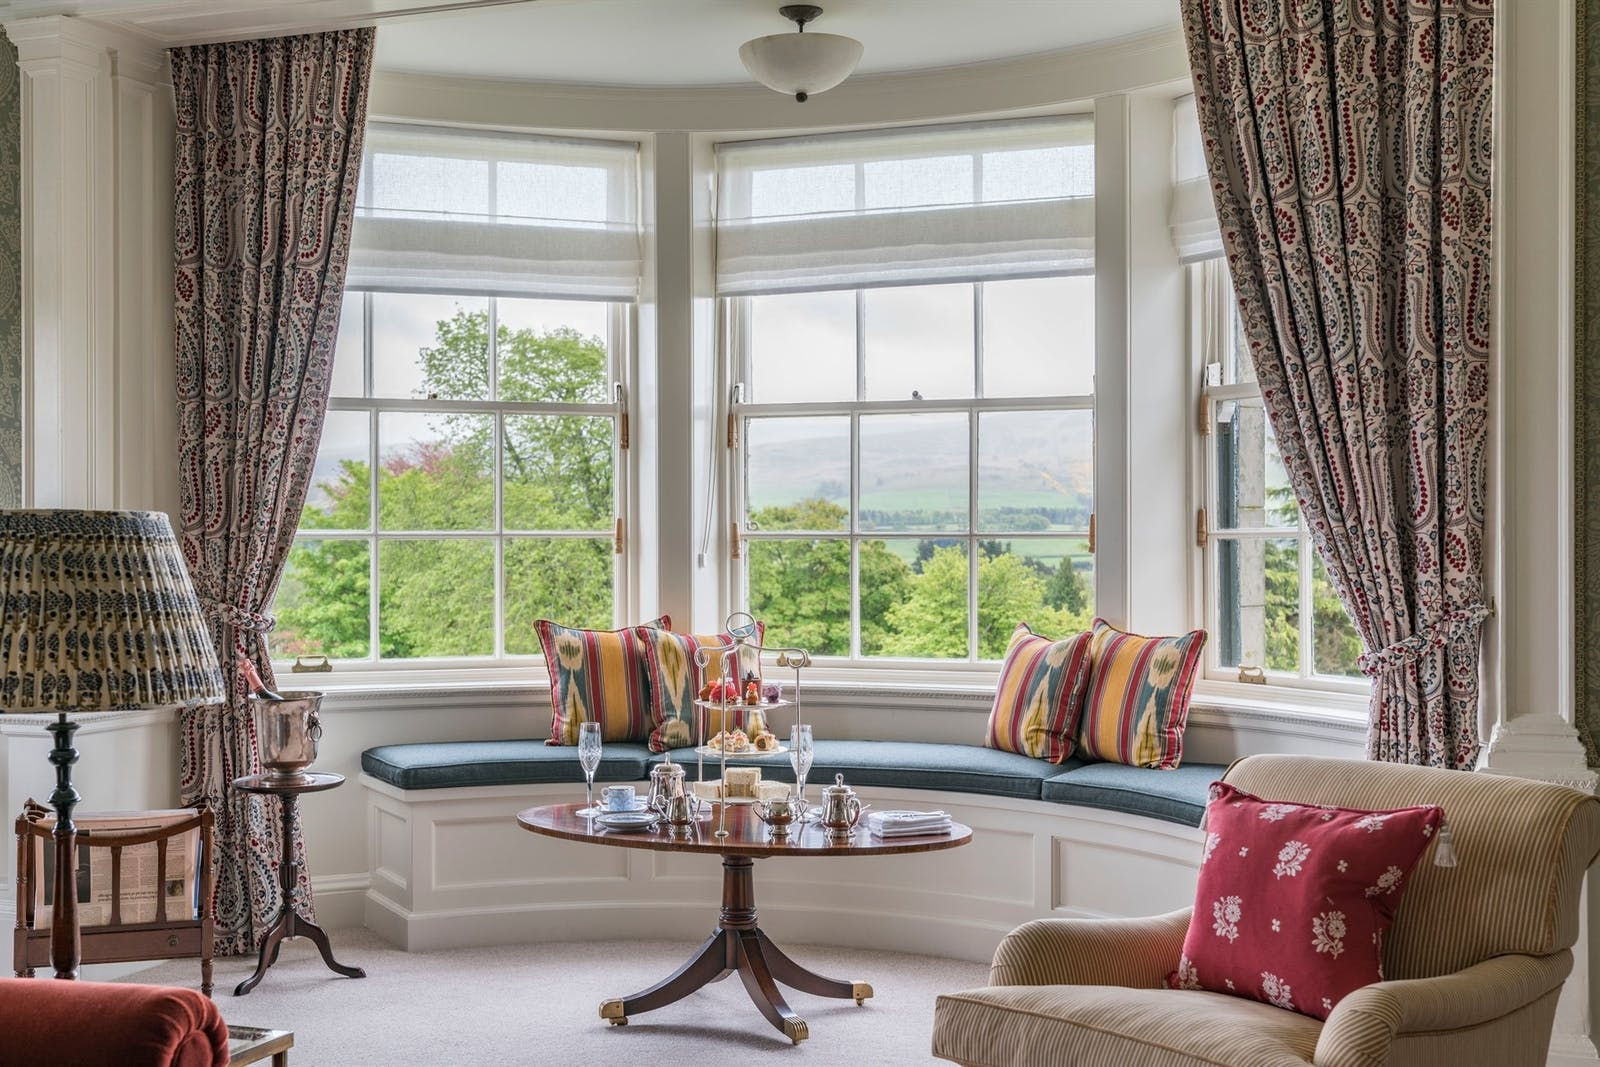 Royal Lochnagar Suite at The Gleneagles Hotel, Scotland, UK